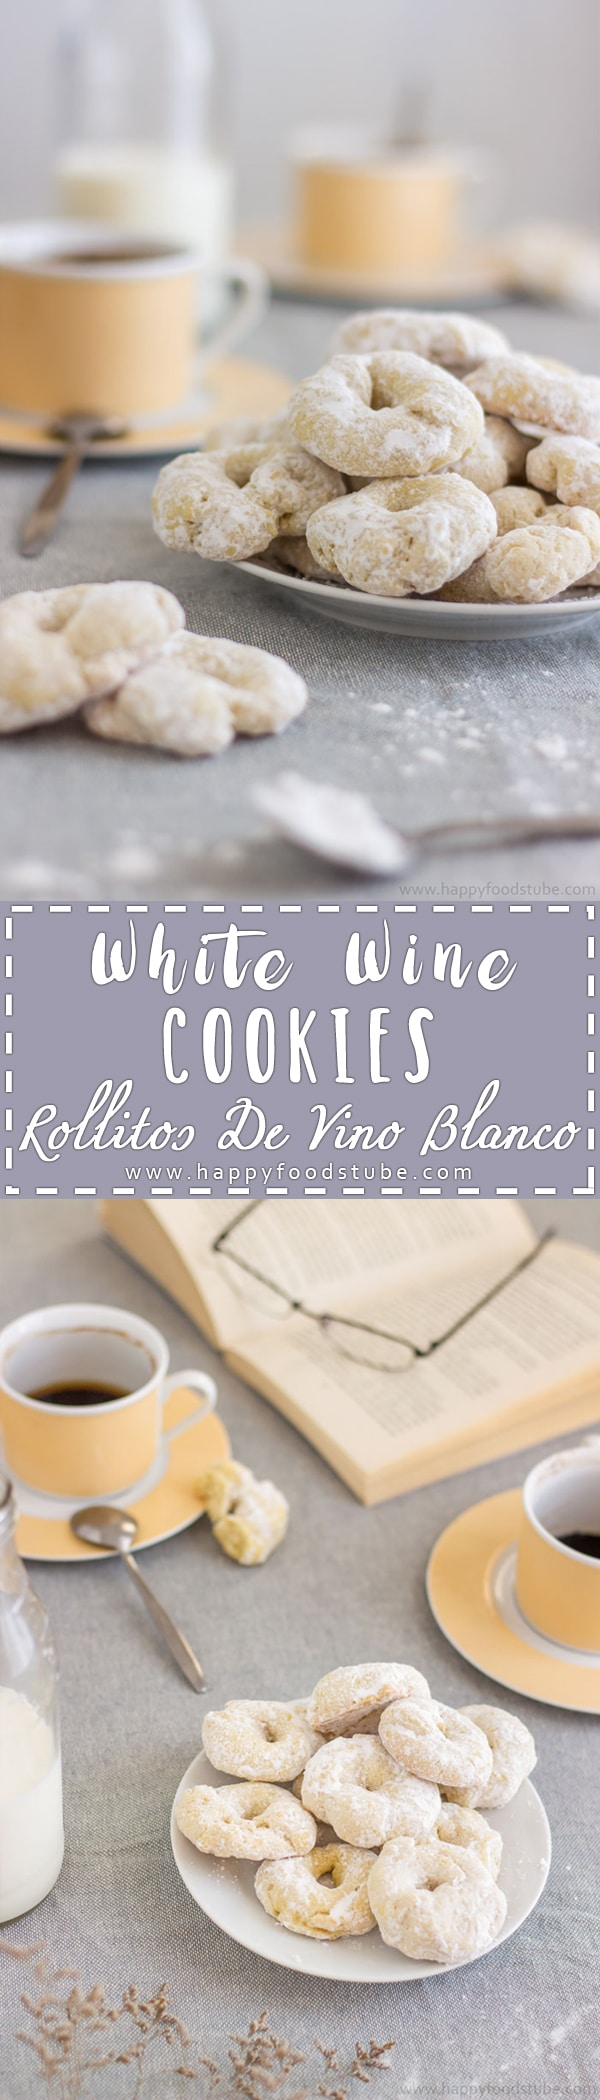 White Wine Cookies - Rollitos de Vino Blanco are delicious sweet treats! Homemade Spanish dessert recipe | happyfoodstube.com